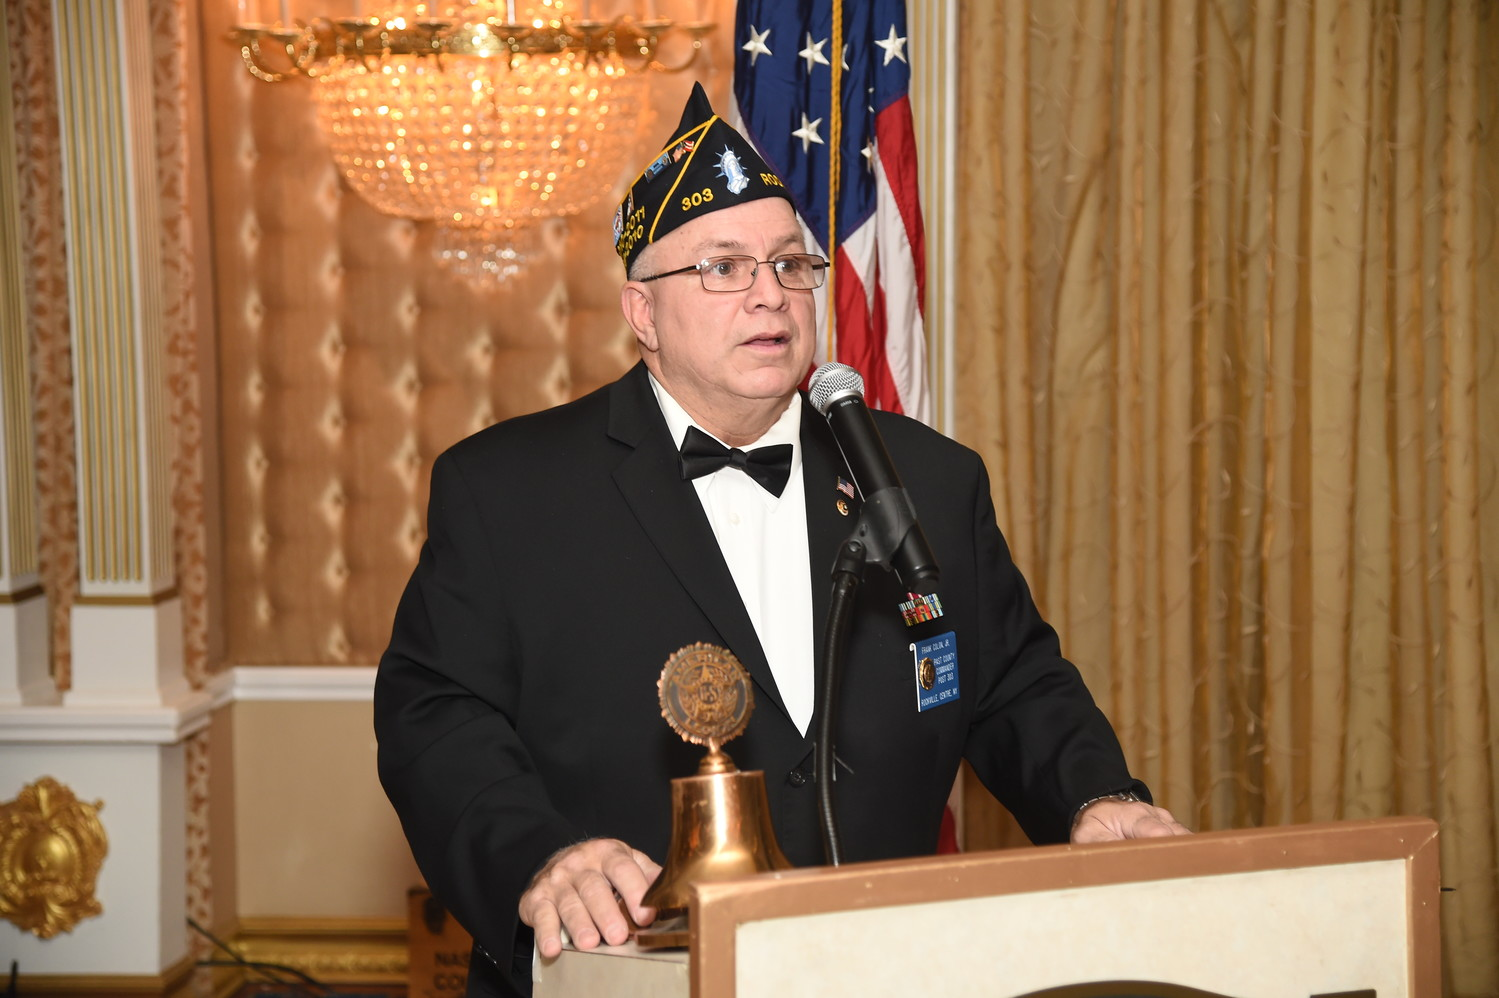 Frank Colon, commander of the village's American Legion Post 303, led the ceremony.